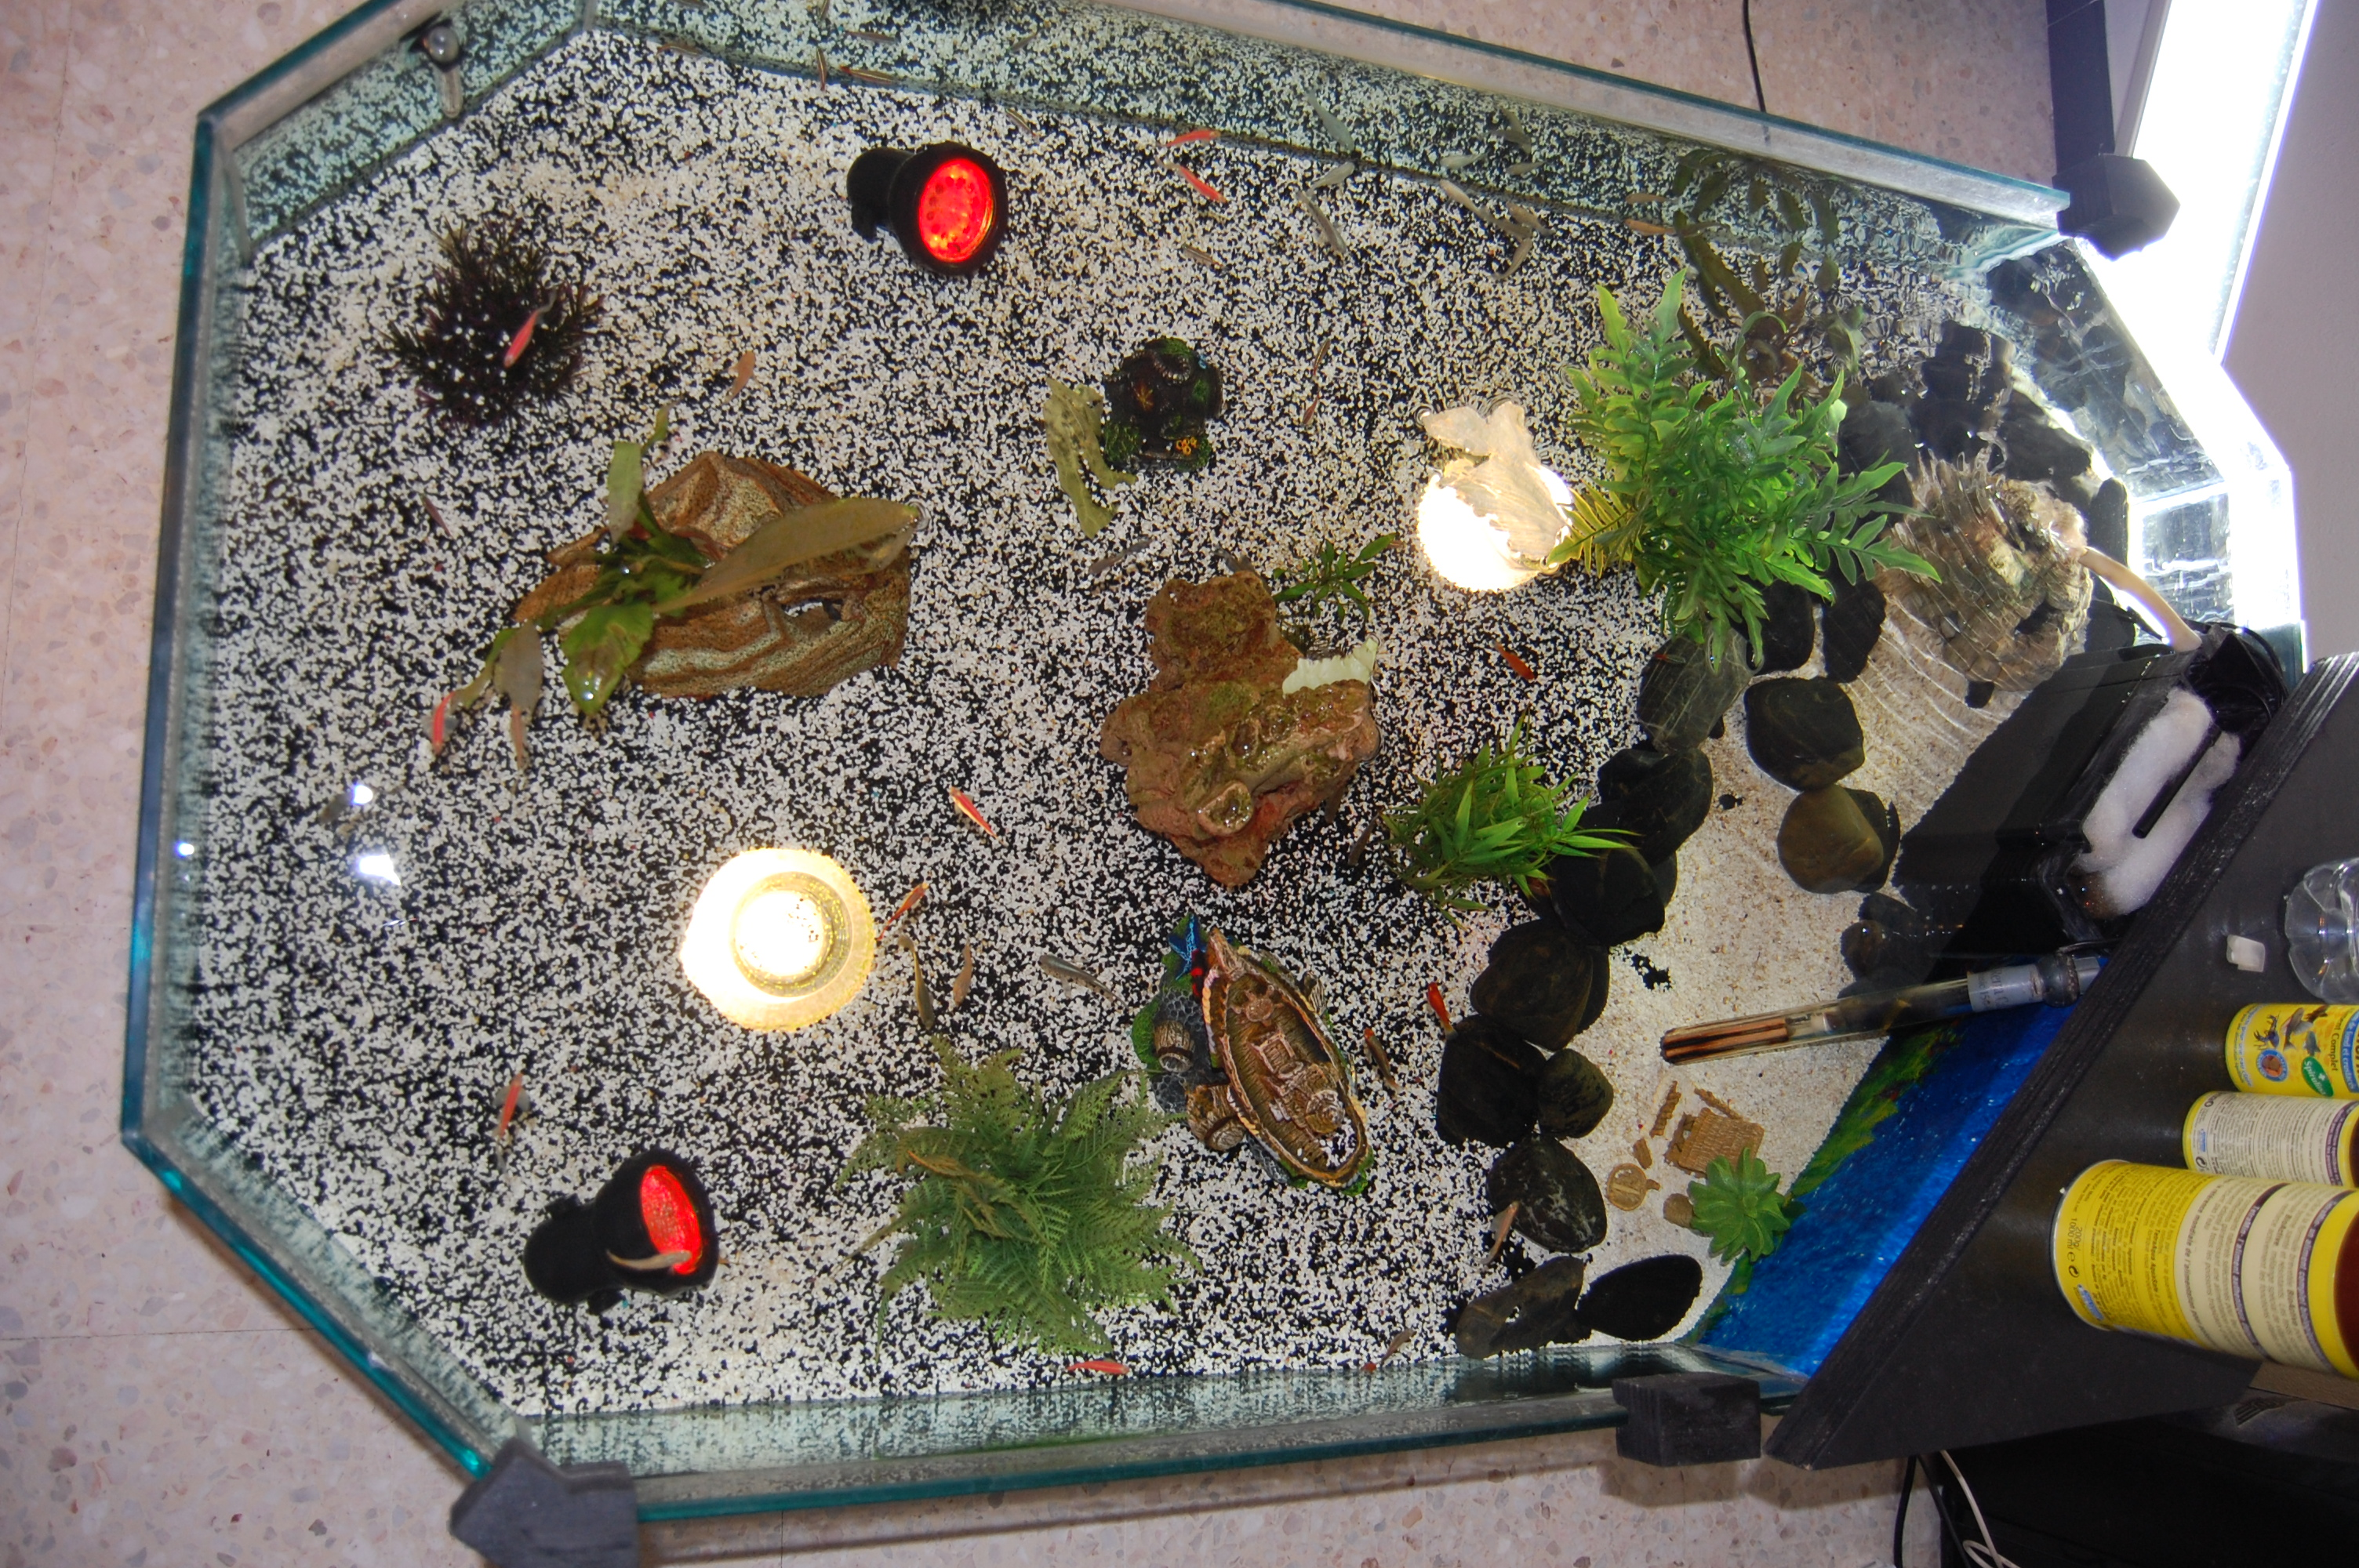 Table basse aquarium fait maison - Table basse fait maison ...